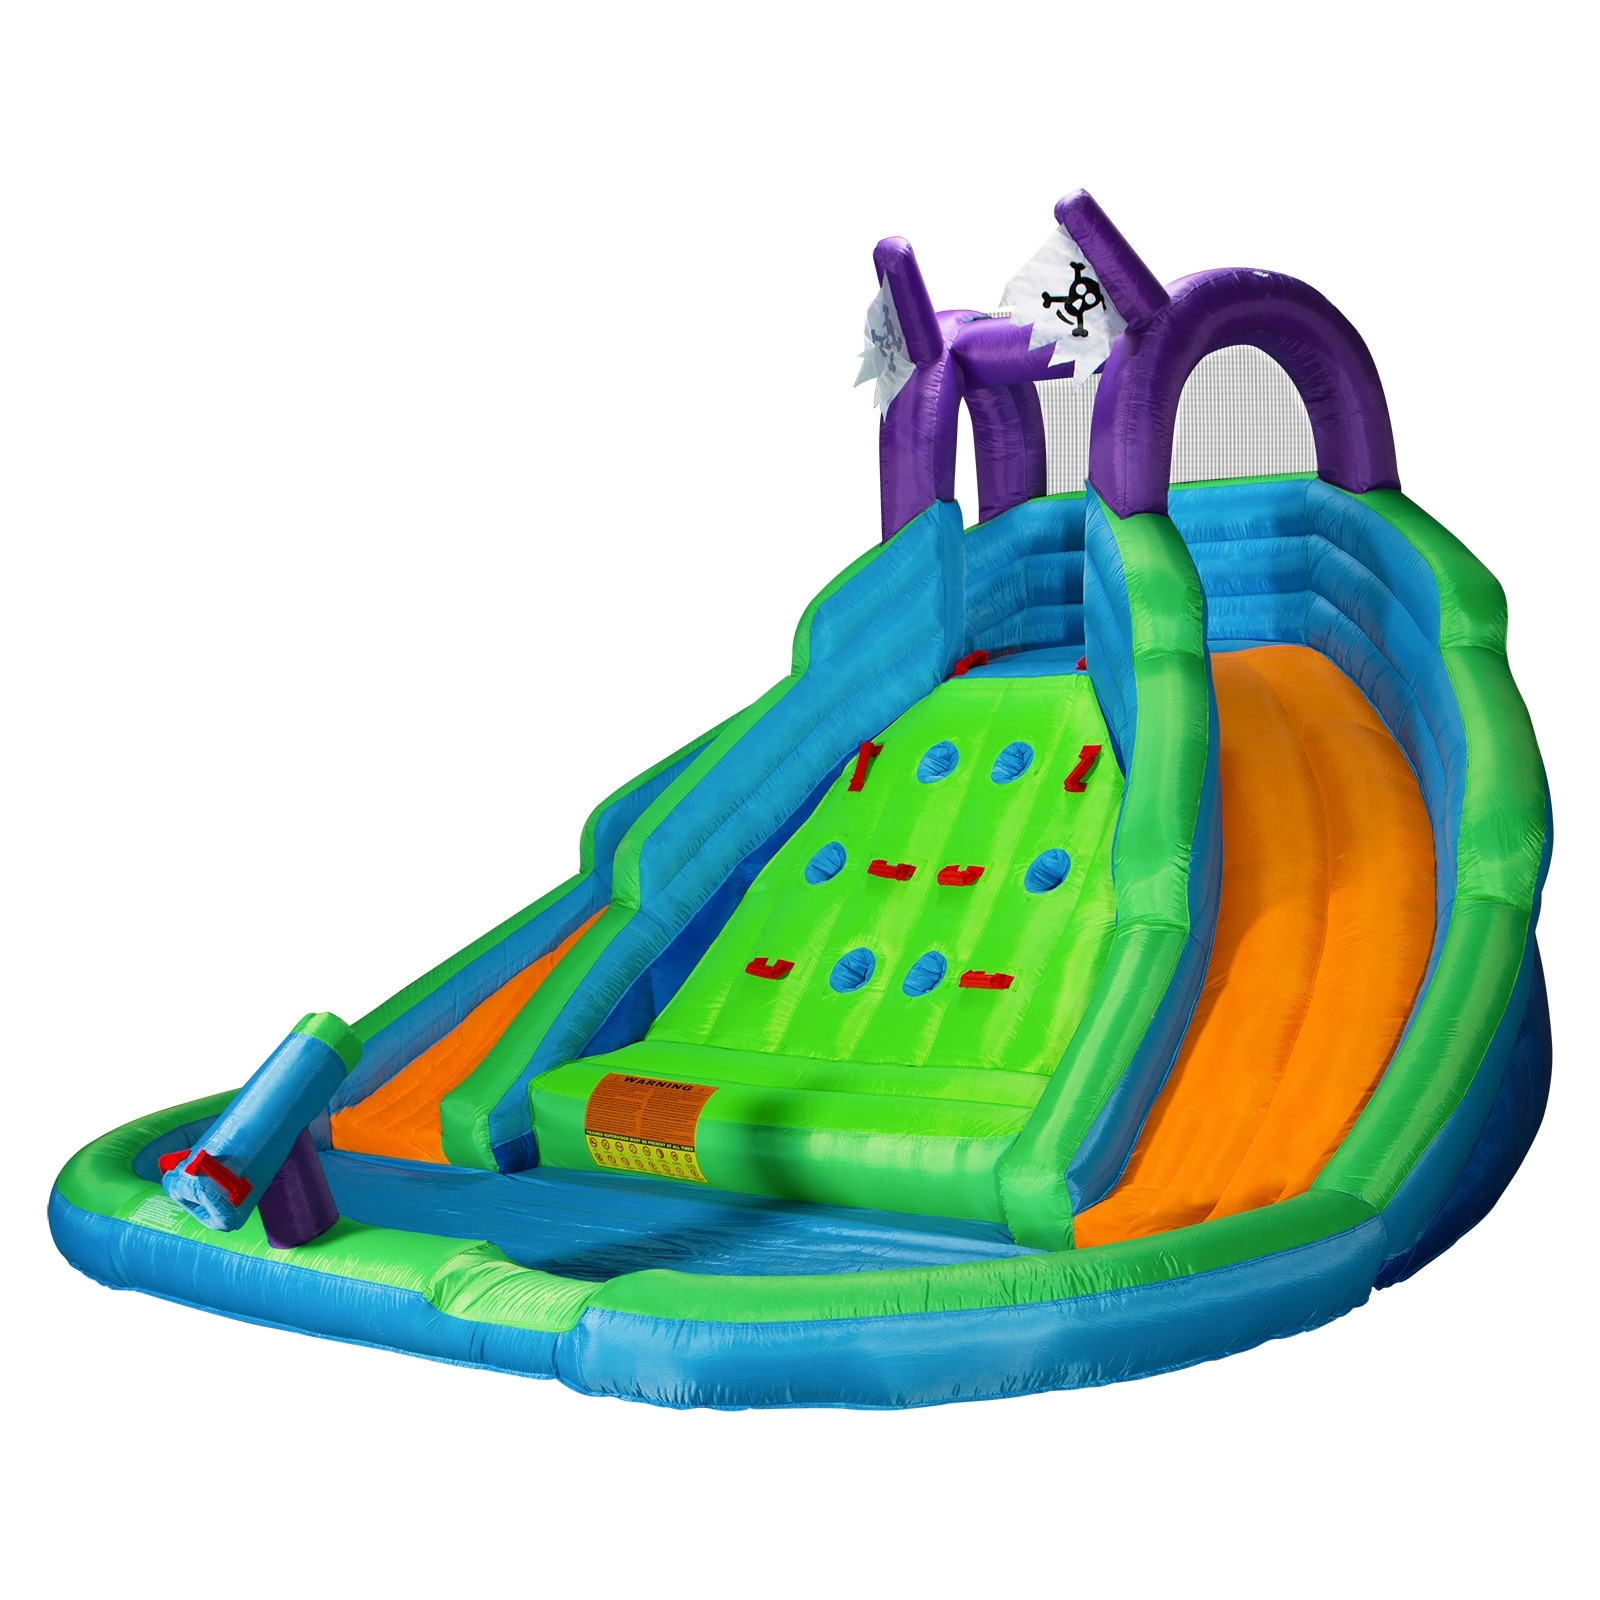 Bounce House W Climbing Wall Water Slide Pool And Blower Cloud 9 On Sale Overstock 20061864